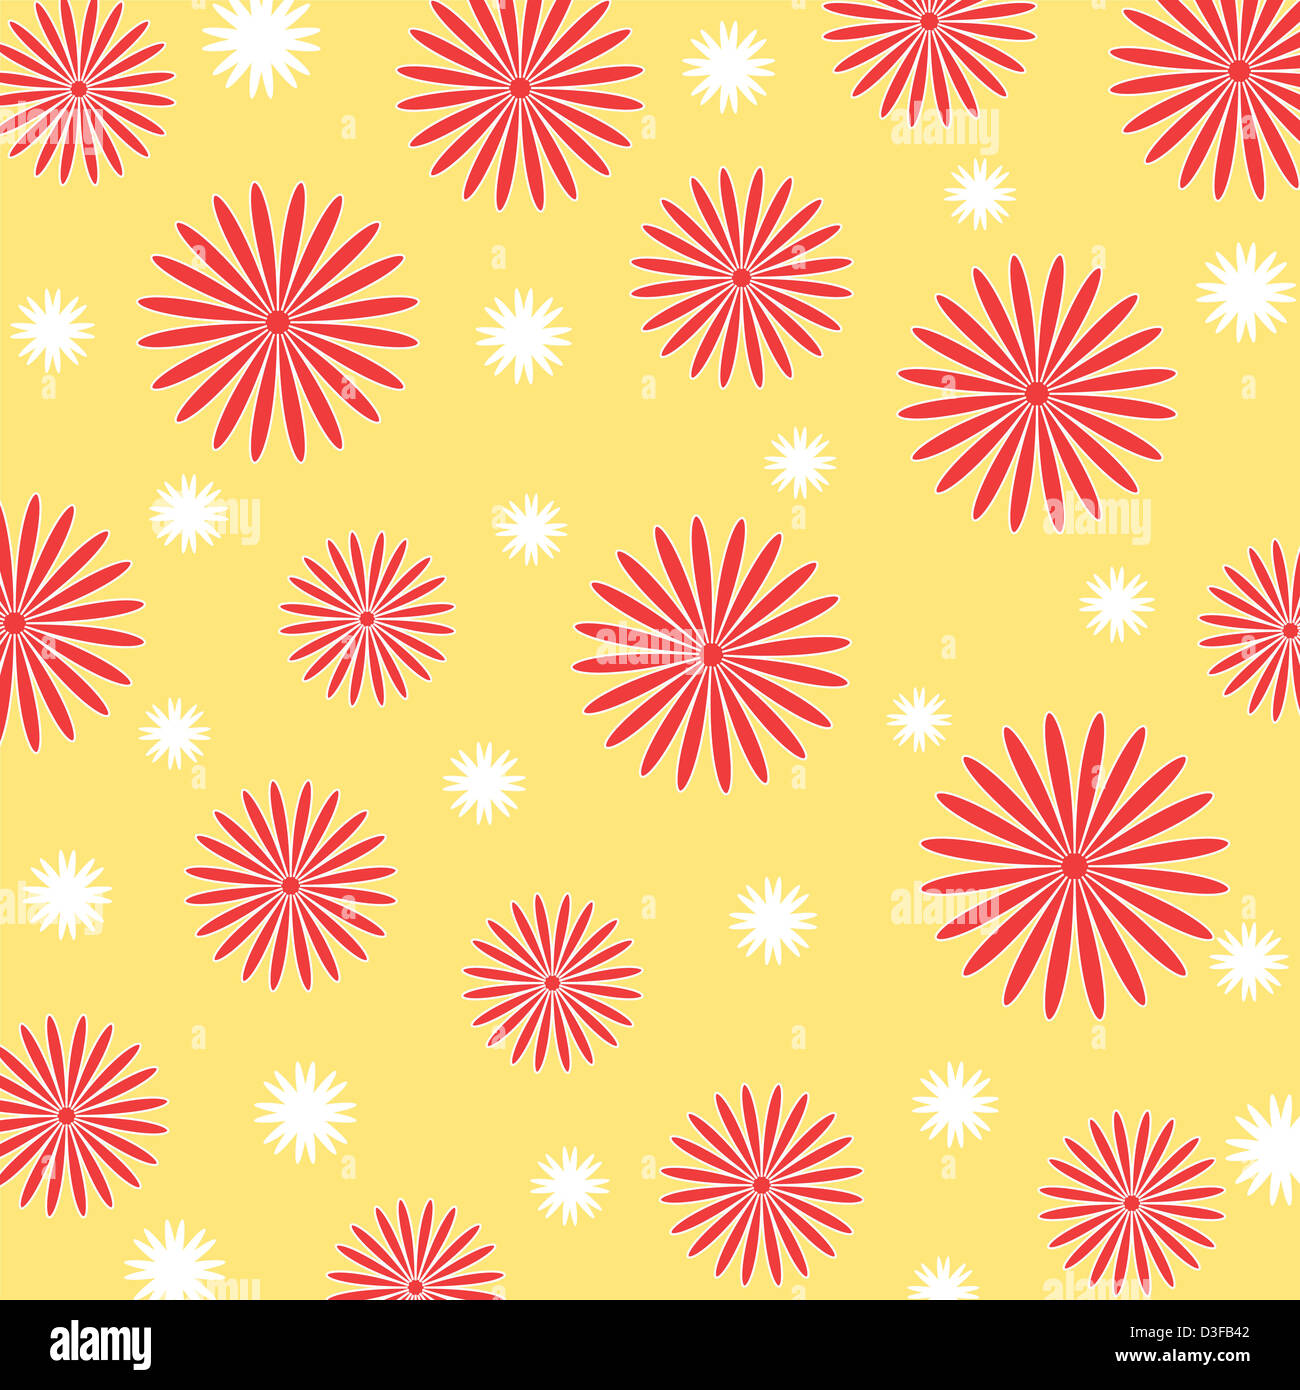 Seamless artistic floral pattern in bright colors Stock Photo